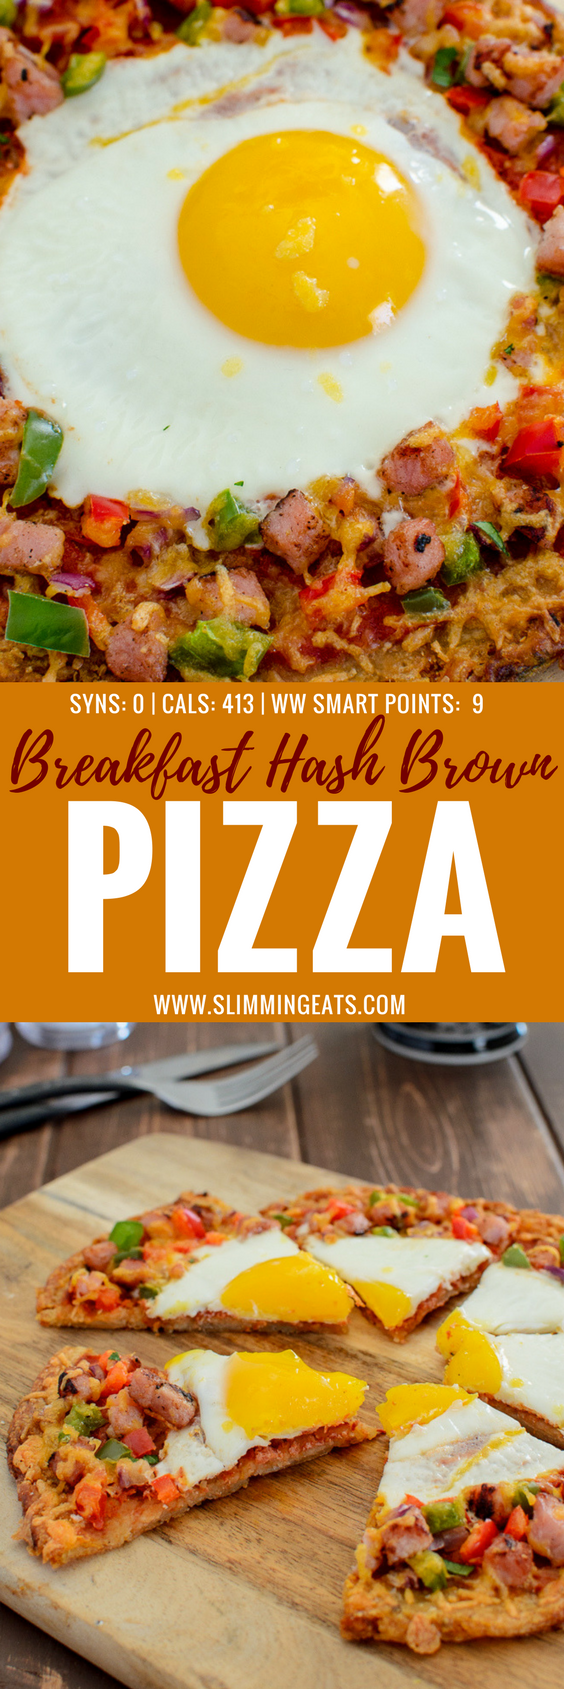 Pizza is not just for Dinner - Try my Syn Free Breakfast Hash Brown Pizza - a crispy golden hash brown base with all your favourite breakfast toppings. Gluten Free, Vegetarian, Slimming World and Weight Watchers friendly.